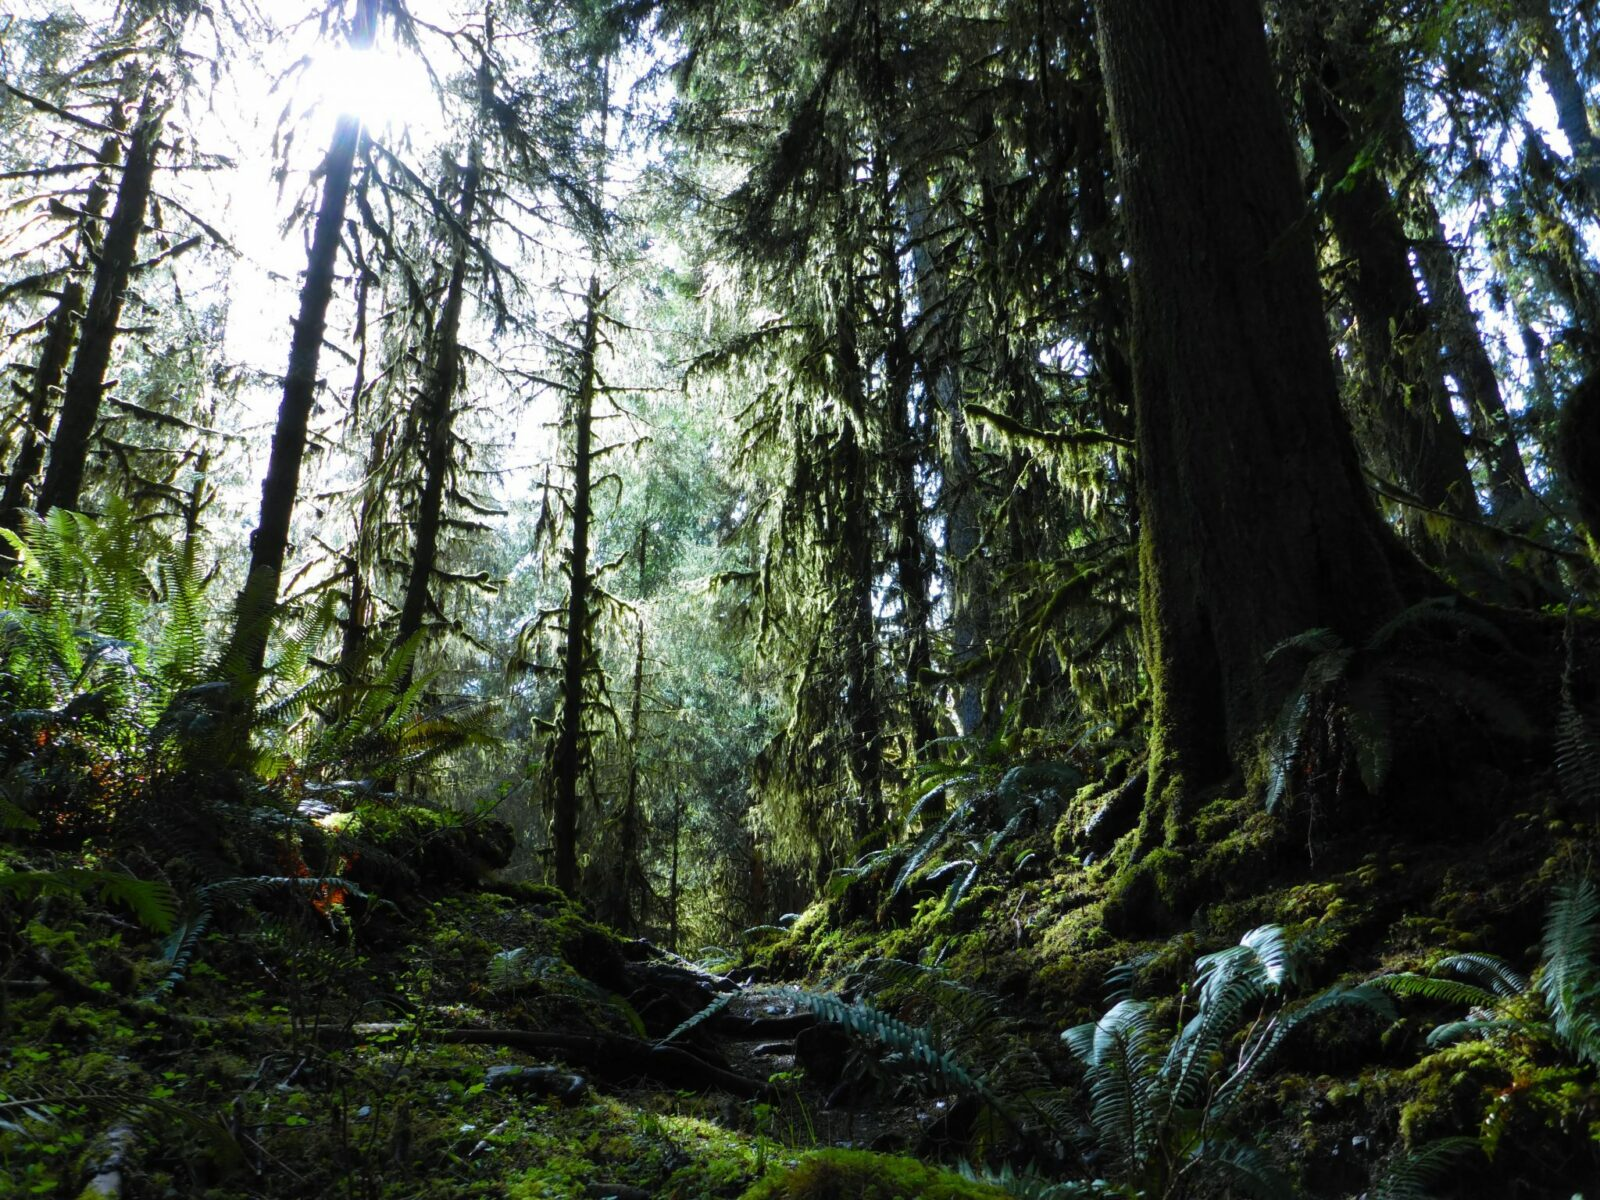 The Hoh Rainforest is a perfect spring hike. There are giant old trees covered in moss and ferns below. On a sunny day the sun struggles to get through the canopy to the forest floor